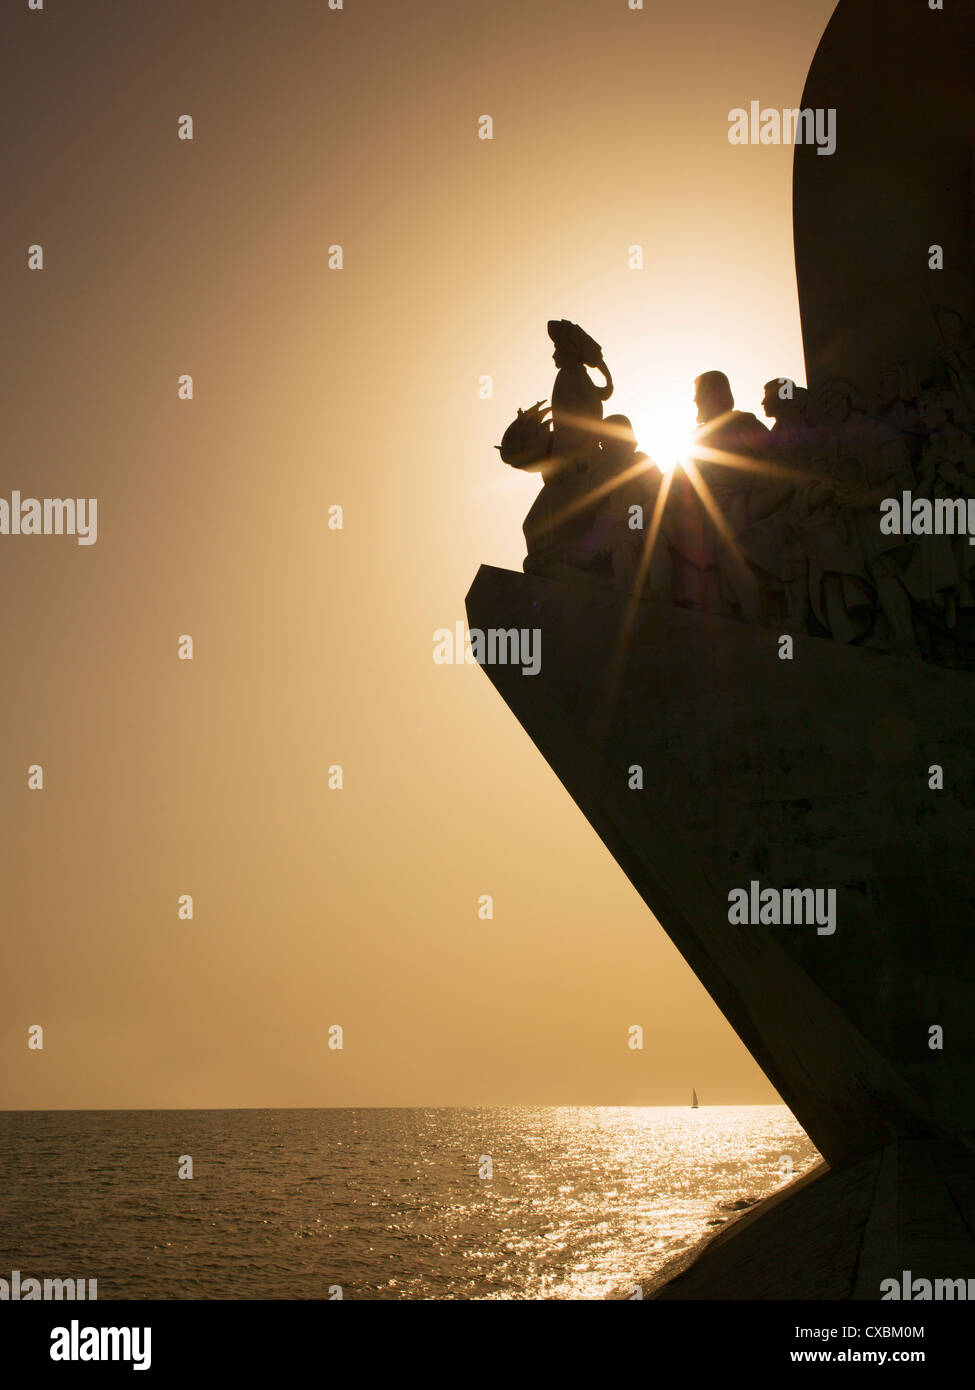 Monument to Discoveries, Belem, Lisbon, Portugal, Europe - Stock Image